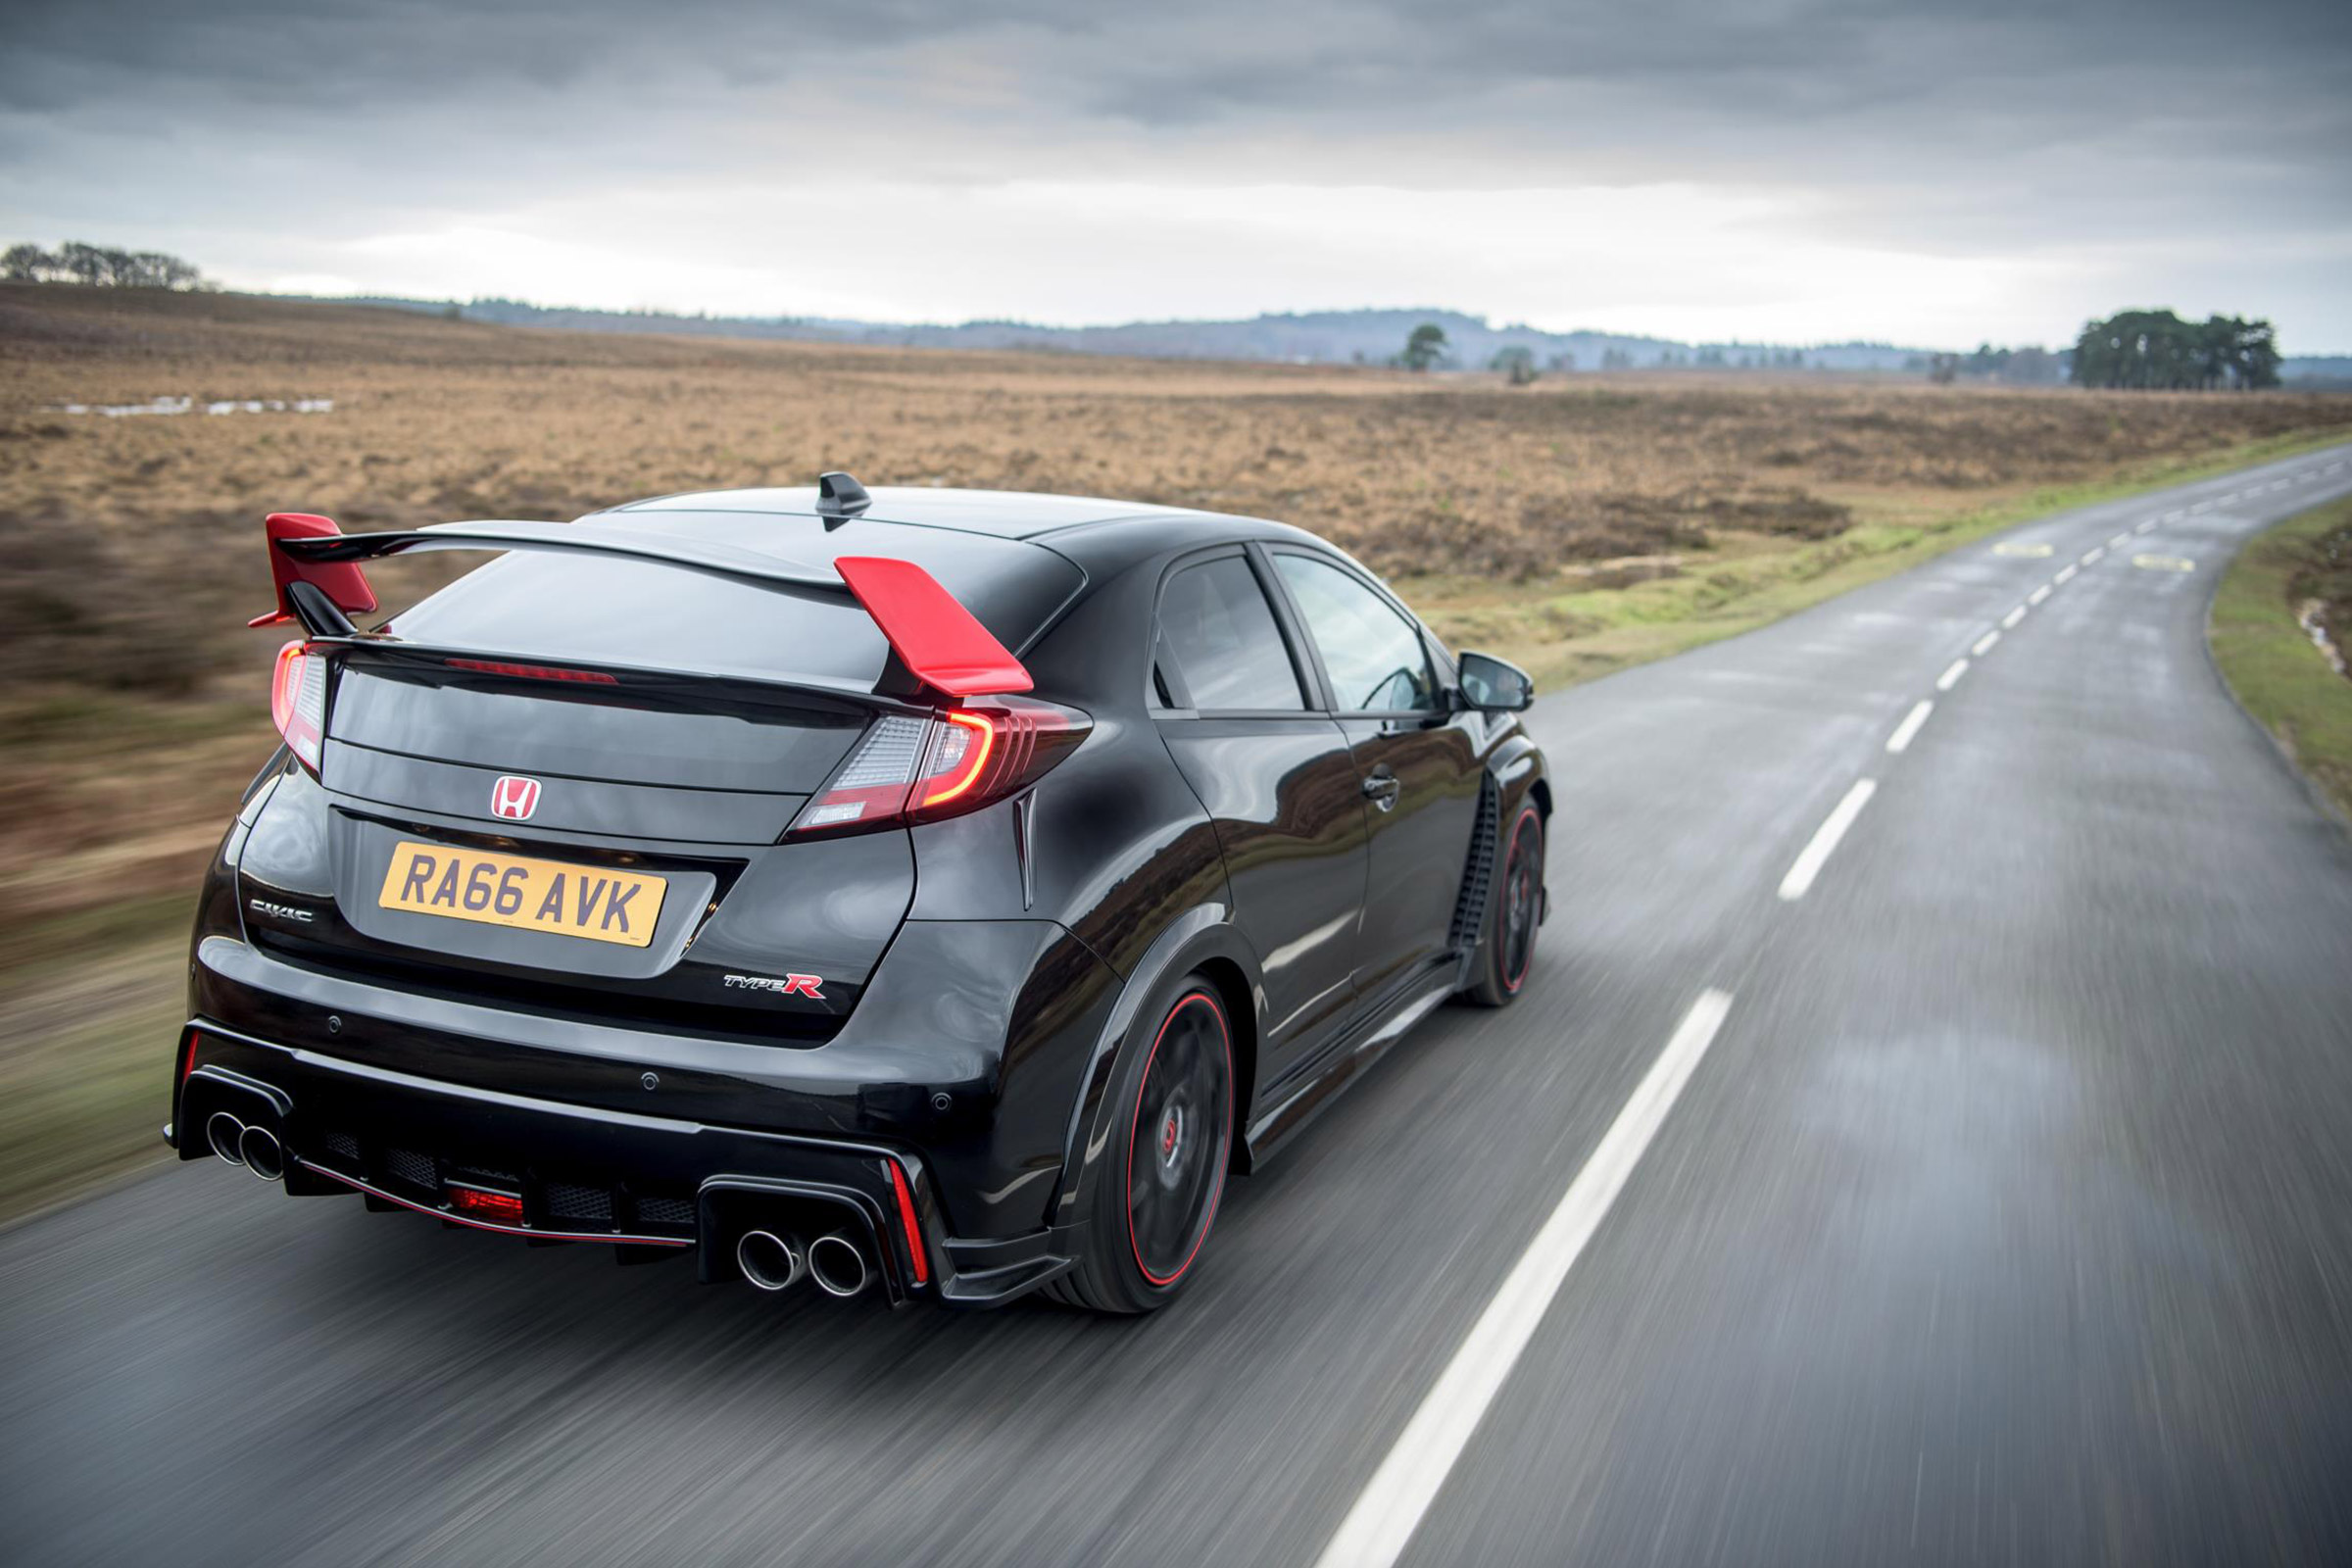 2017 Honda Civic Type R Black Edition Test Drive Rear View (Photo 6 of 6)